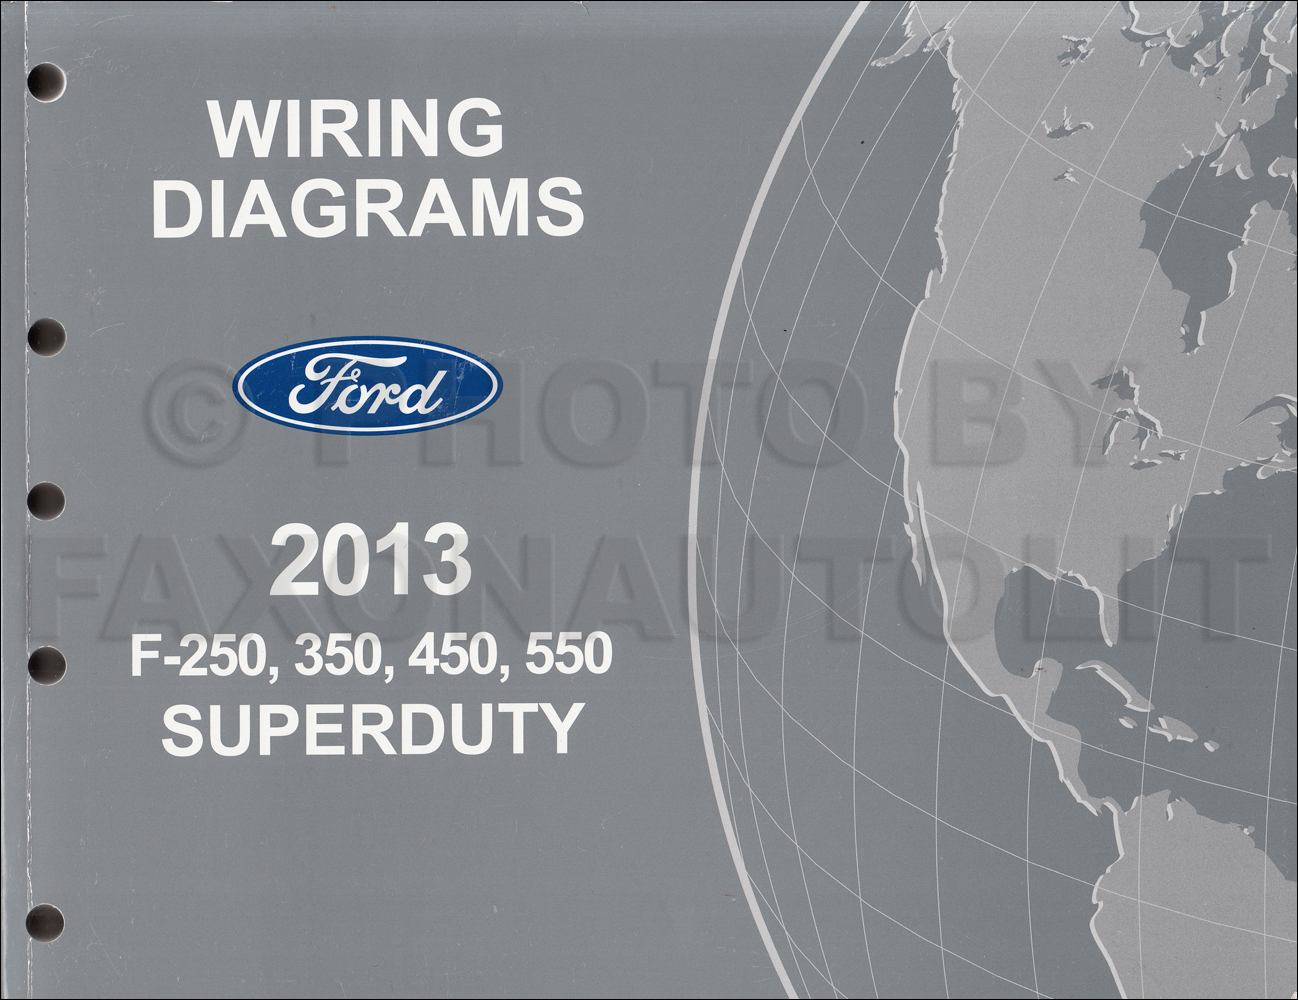 2013 Ford F250-F550 Super DutyTruck Wiring Diagram Manual Original